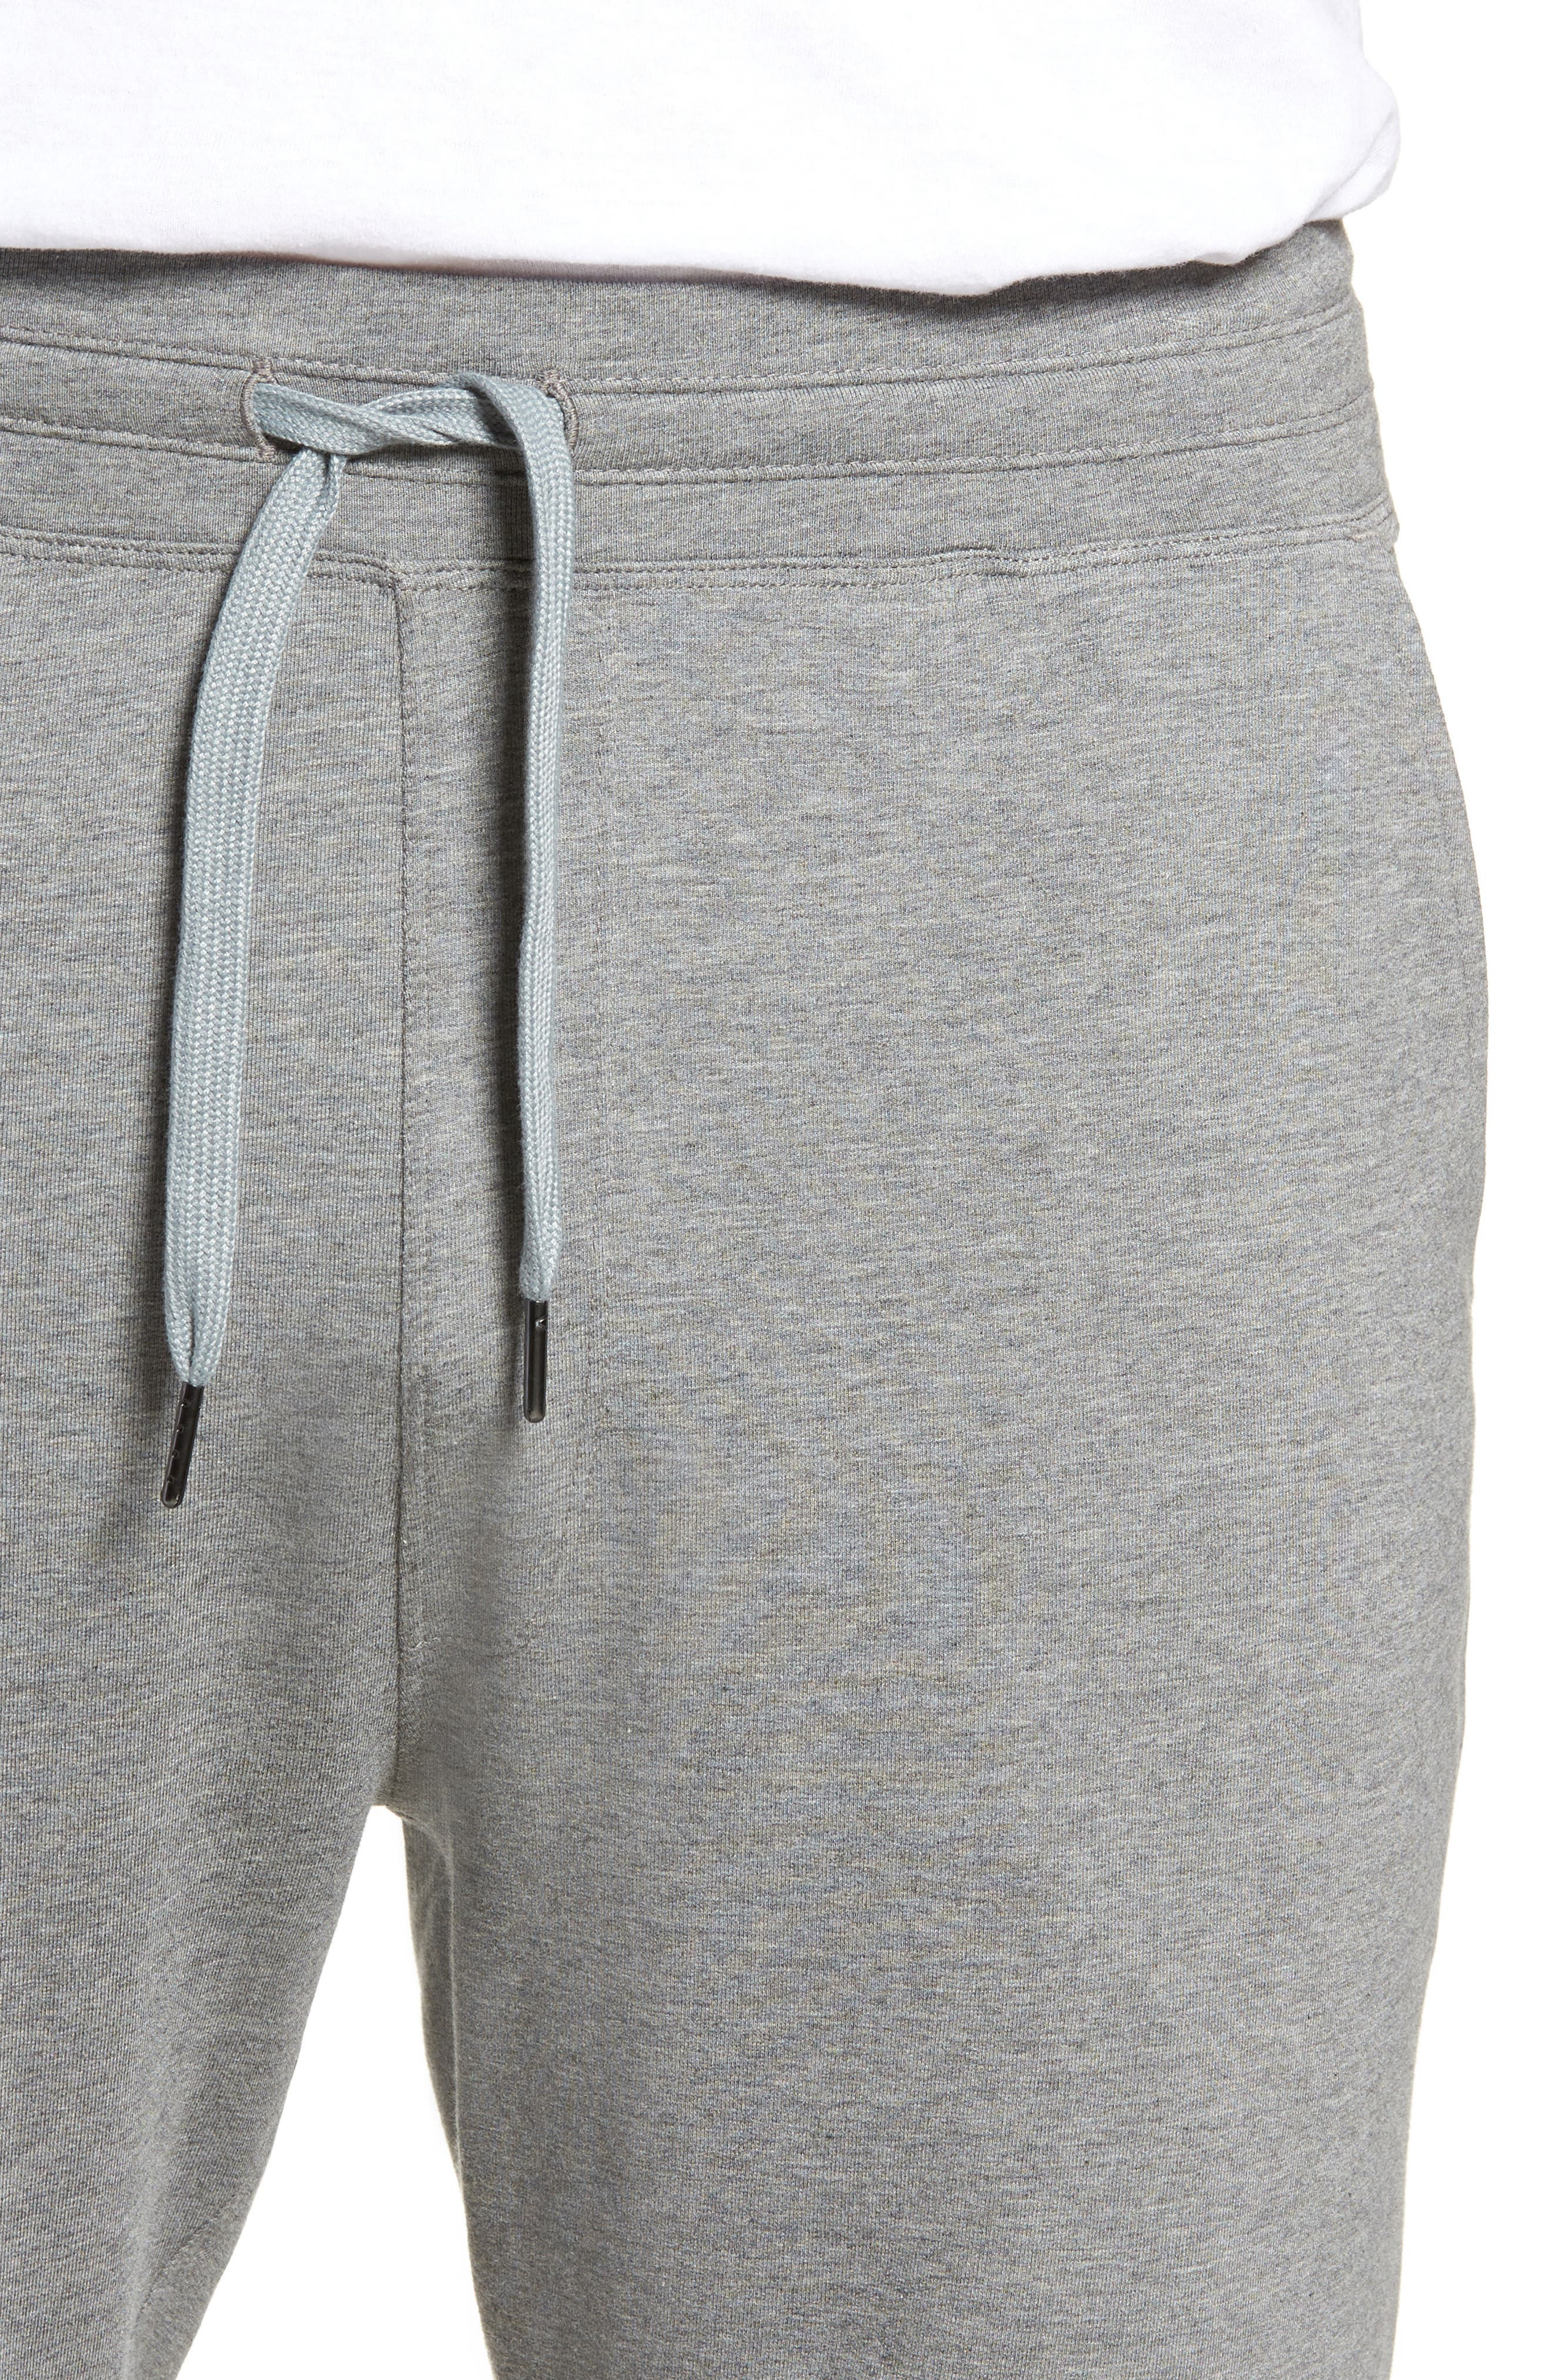 Legacy II Semi-Fitted Knit Athletic Shorts,                             Alternate thumbnail 4, color,                             HEATHER GRAY